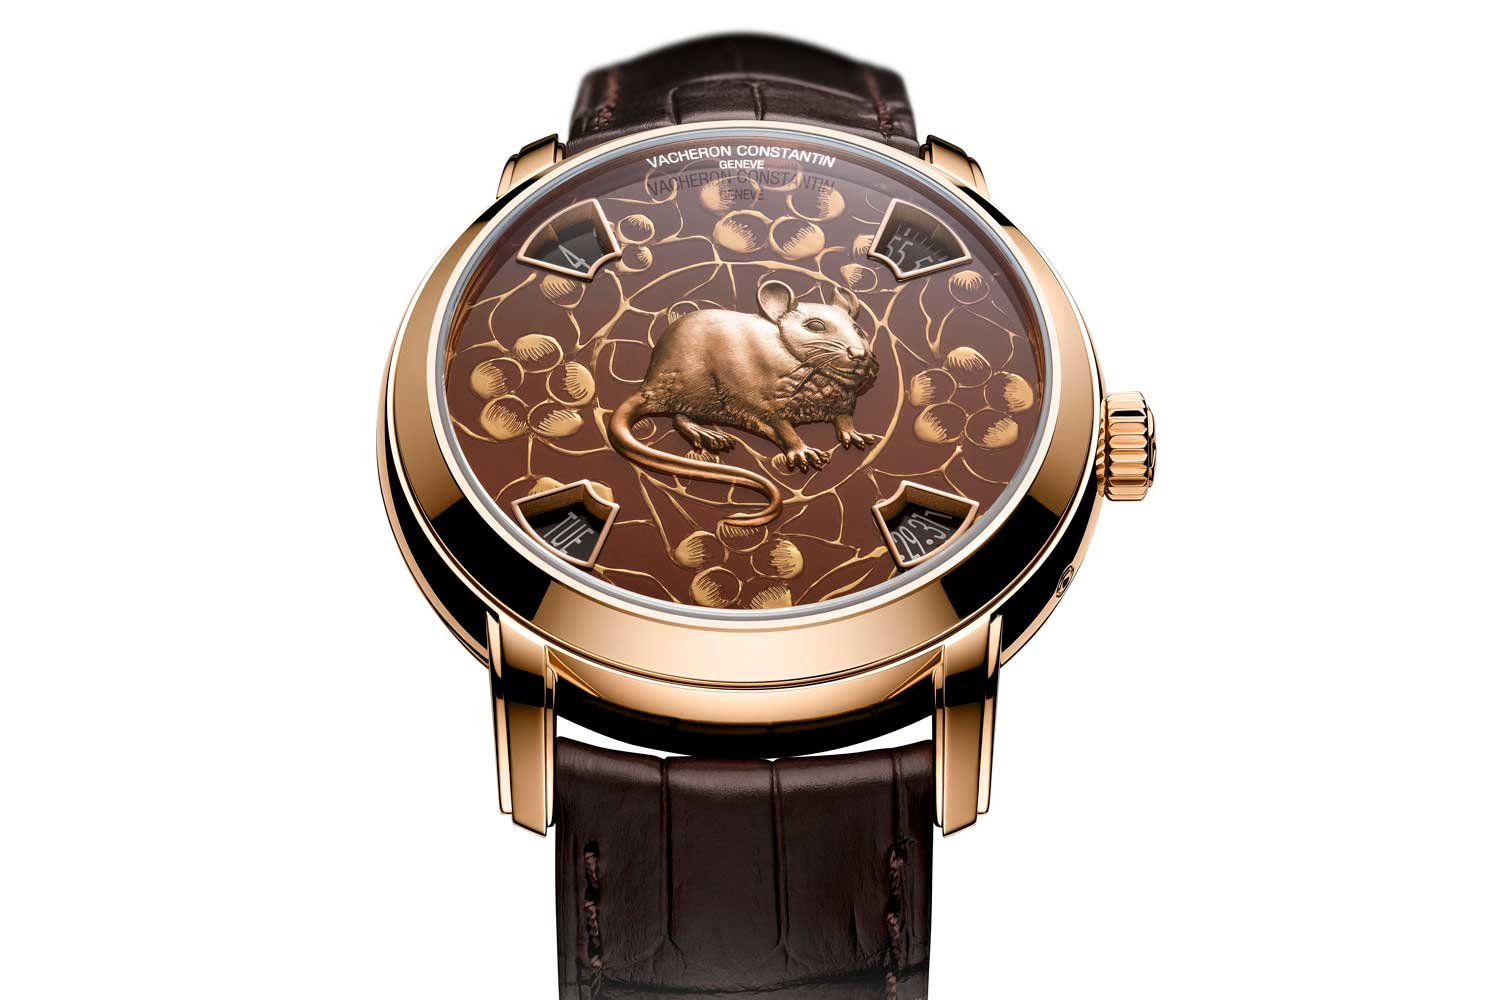 Vacheron Constantin Metiers d'Art The Legend of Chinese Zodiac Year of the Rat